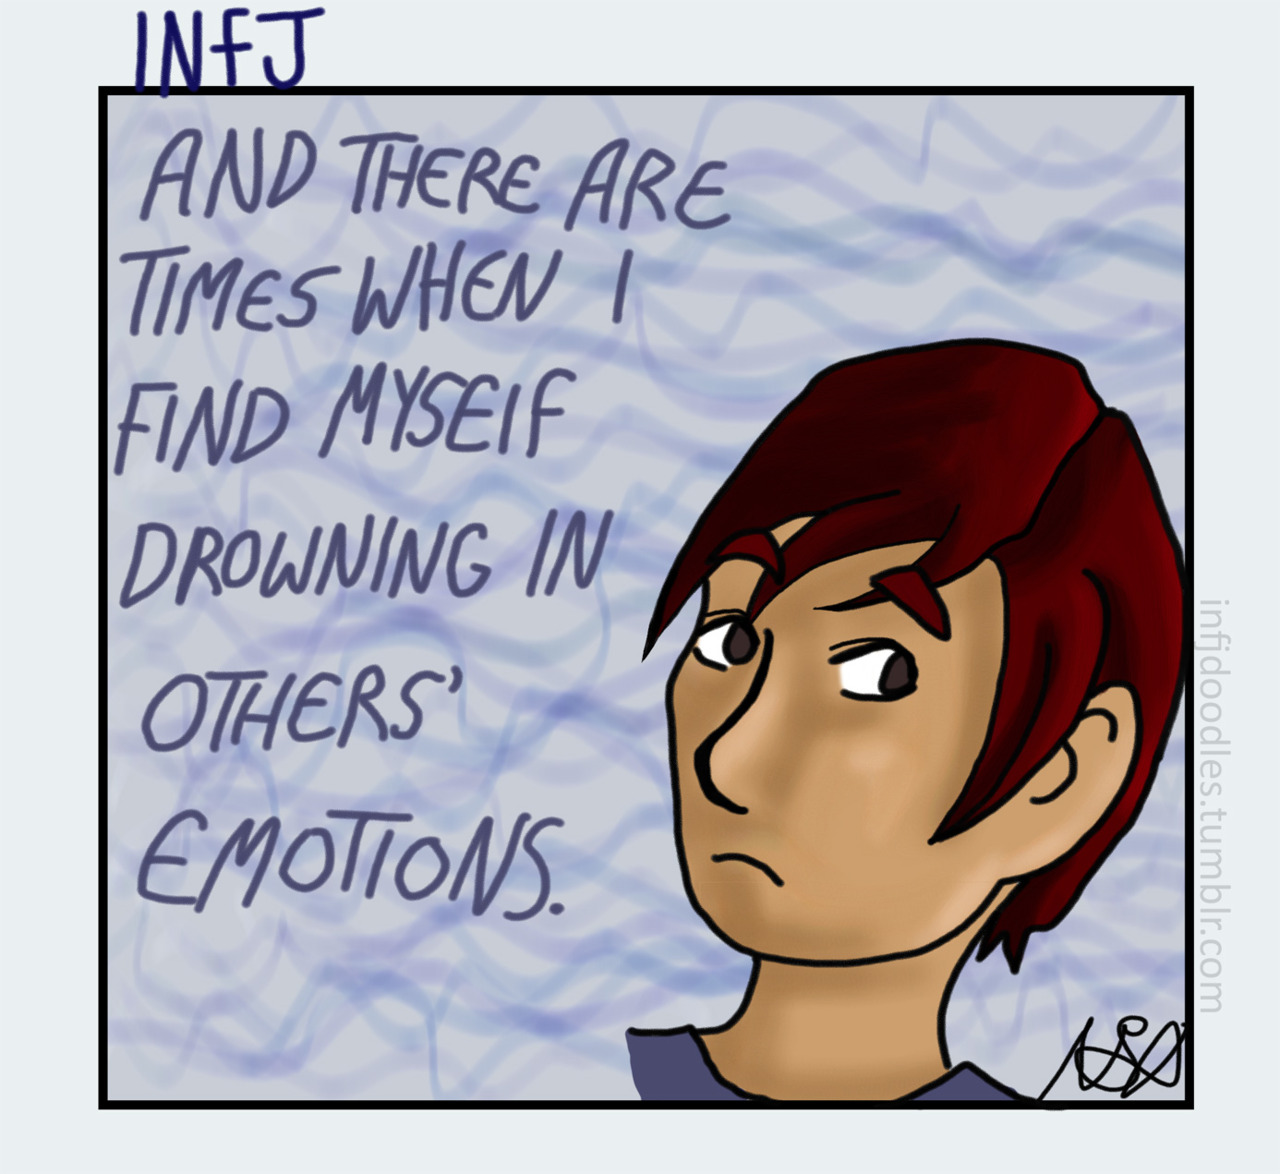 From INFJ Doodles